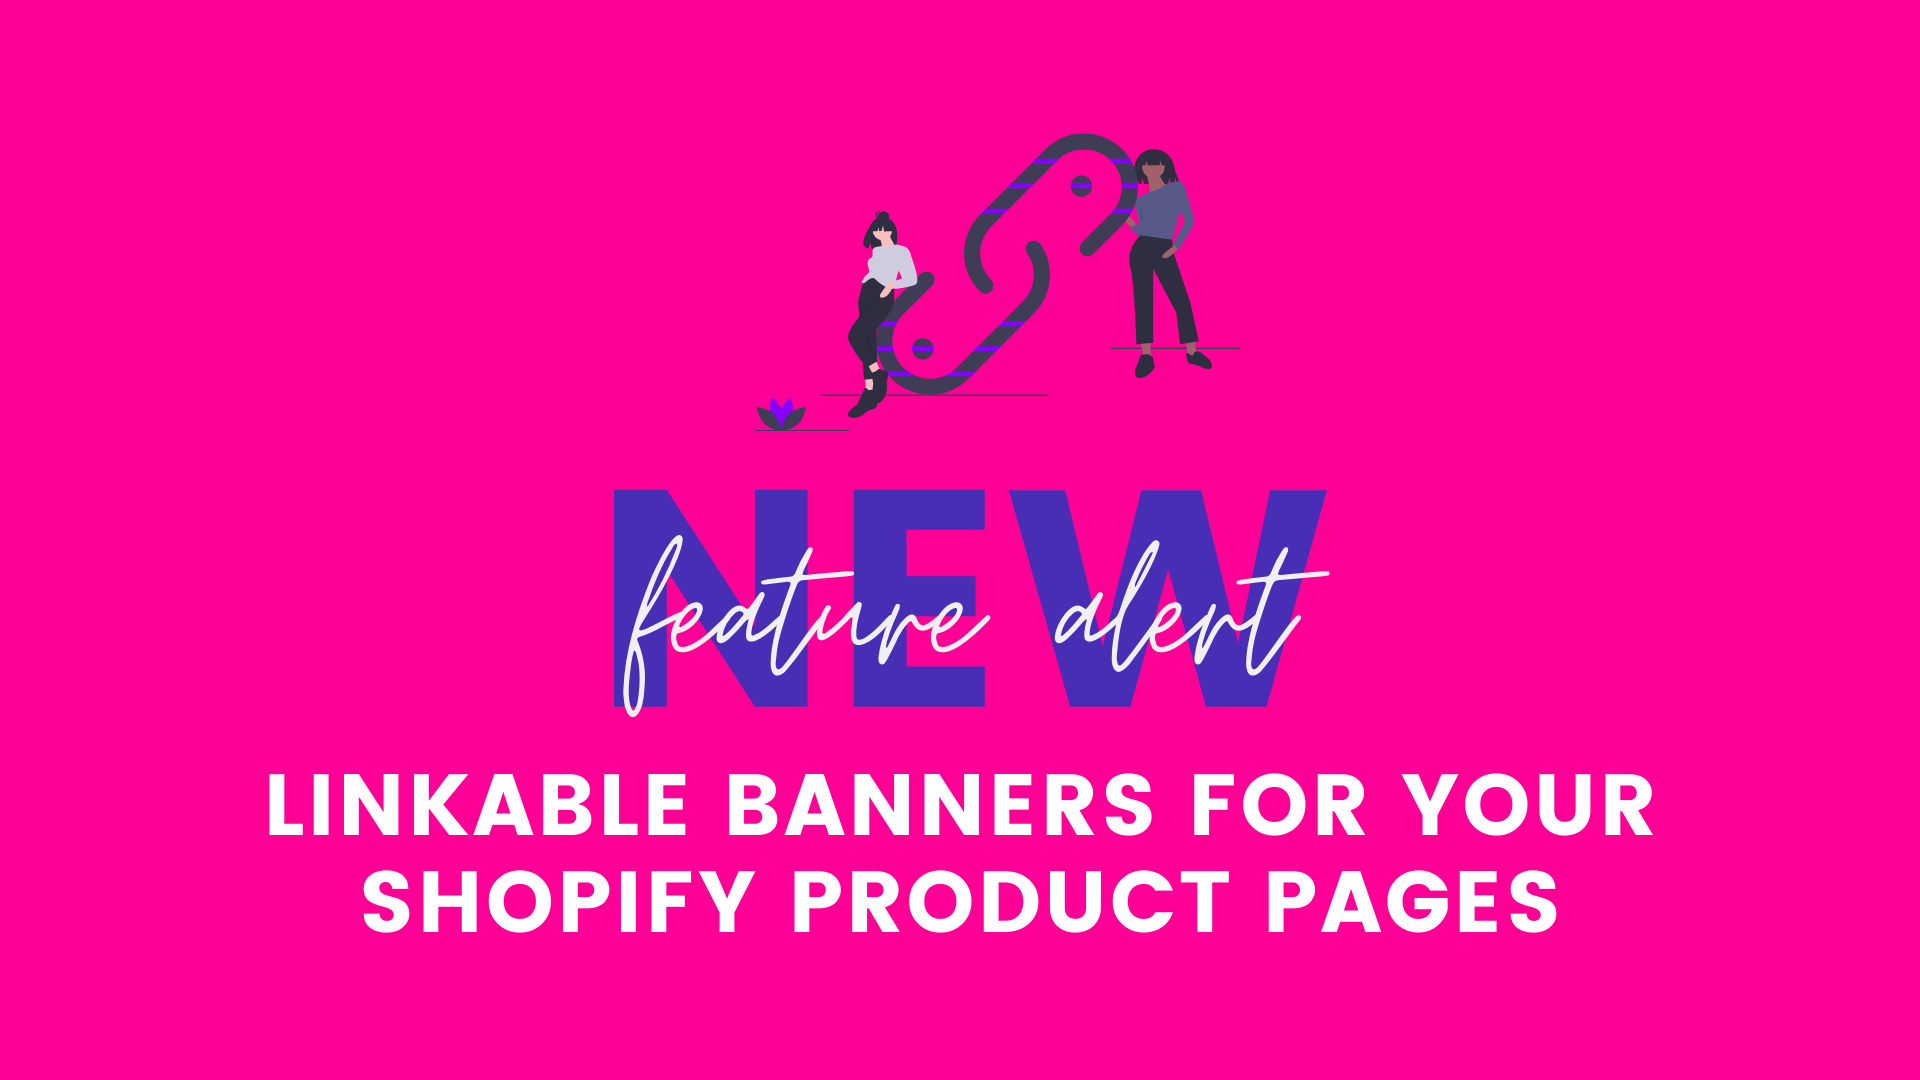 New in Because: Linkable Banners for Your Shopify Product Pages